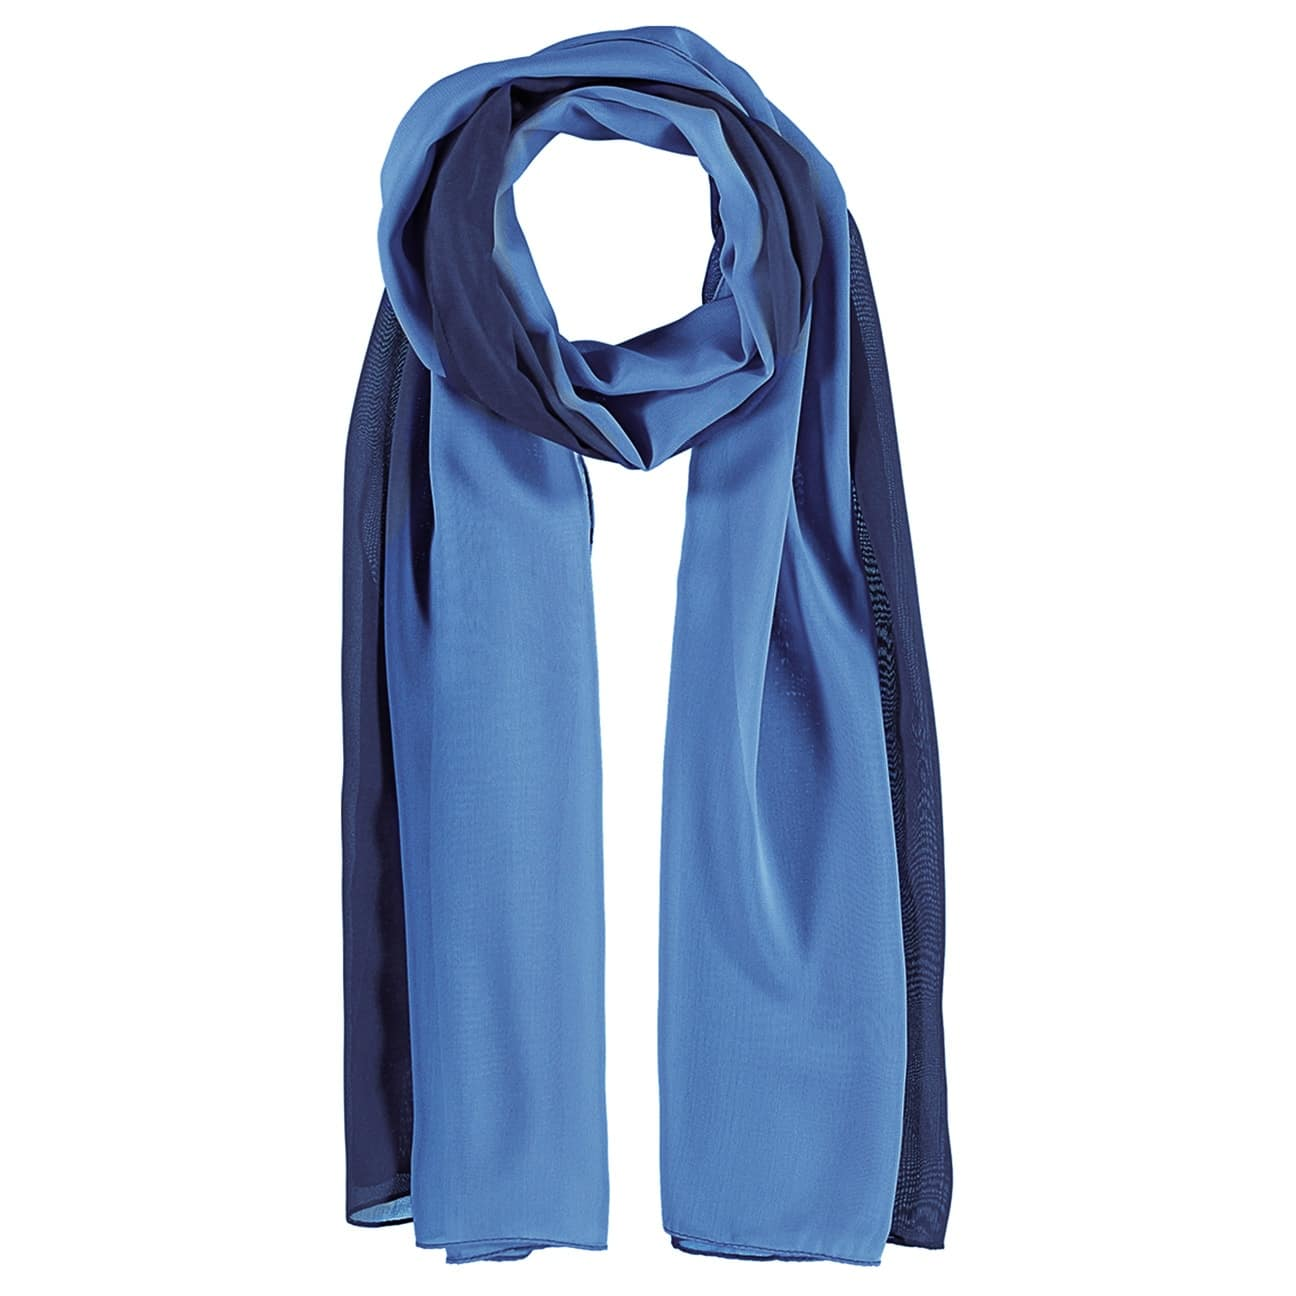 Écharpe Coloured Chiffon by Passigatti  foulard d`été